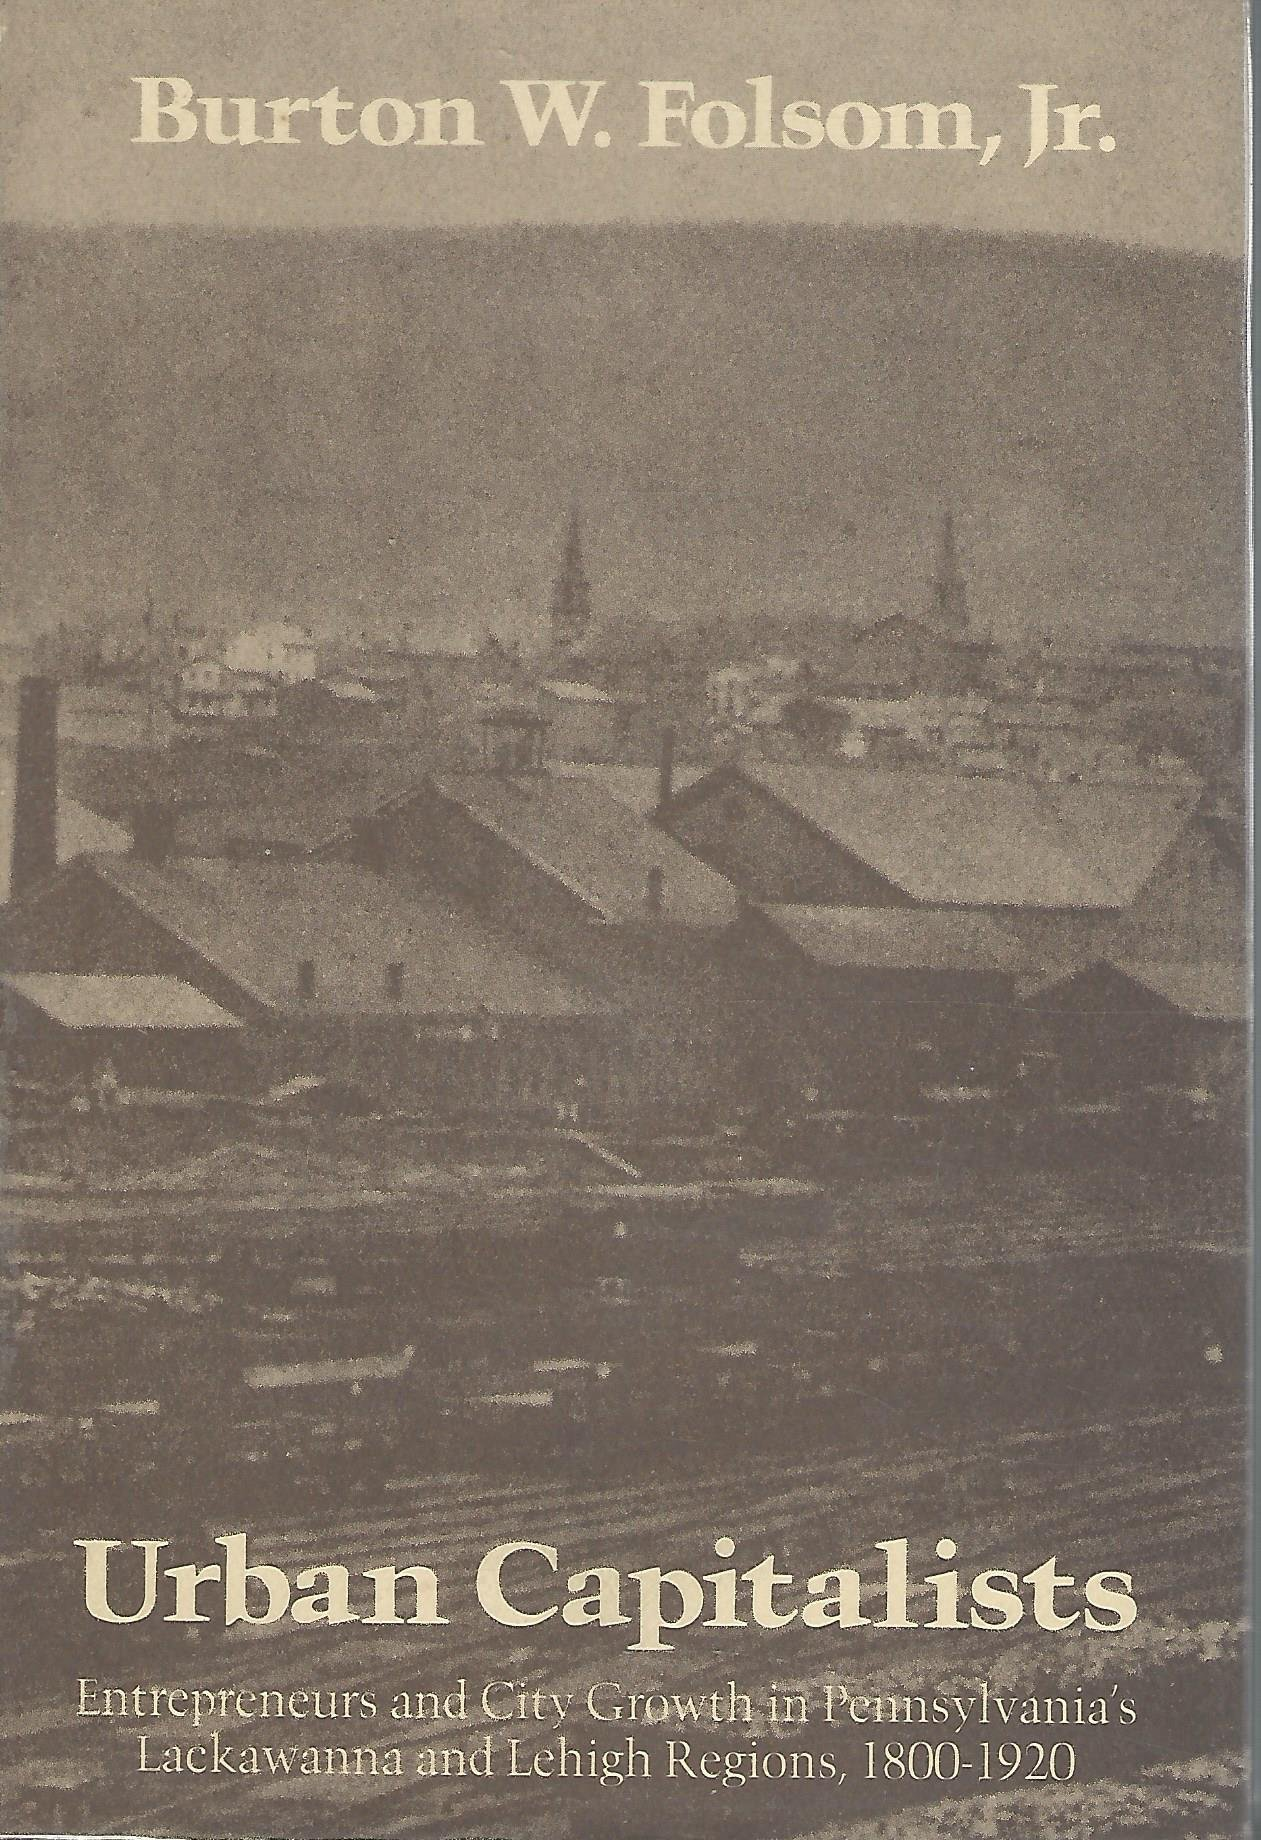 Urban Capitalists: Entrepreneurs and City Growth in Pennsylvania's Lackawanna and Lehigh Regions, 1800-1920 (Studies in Industry and Society) ebook